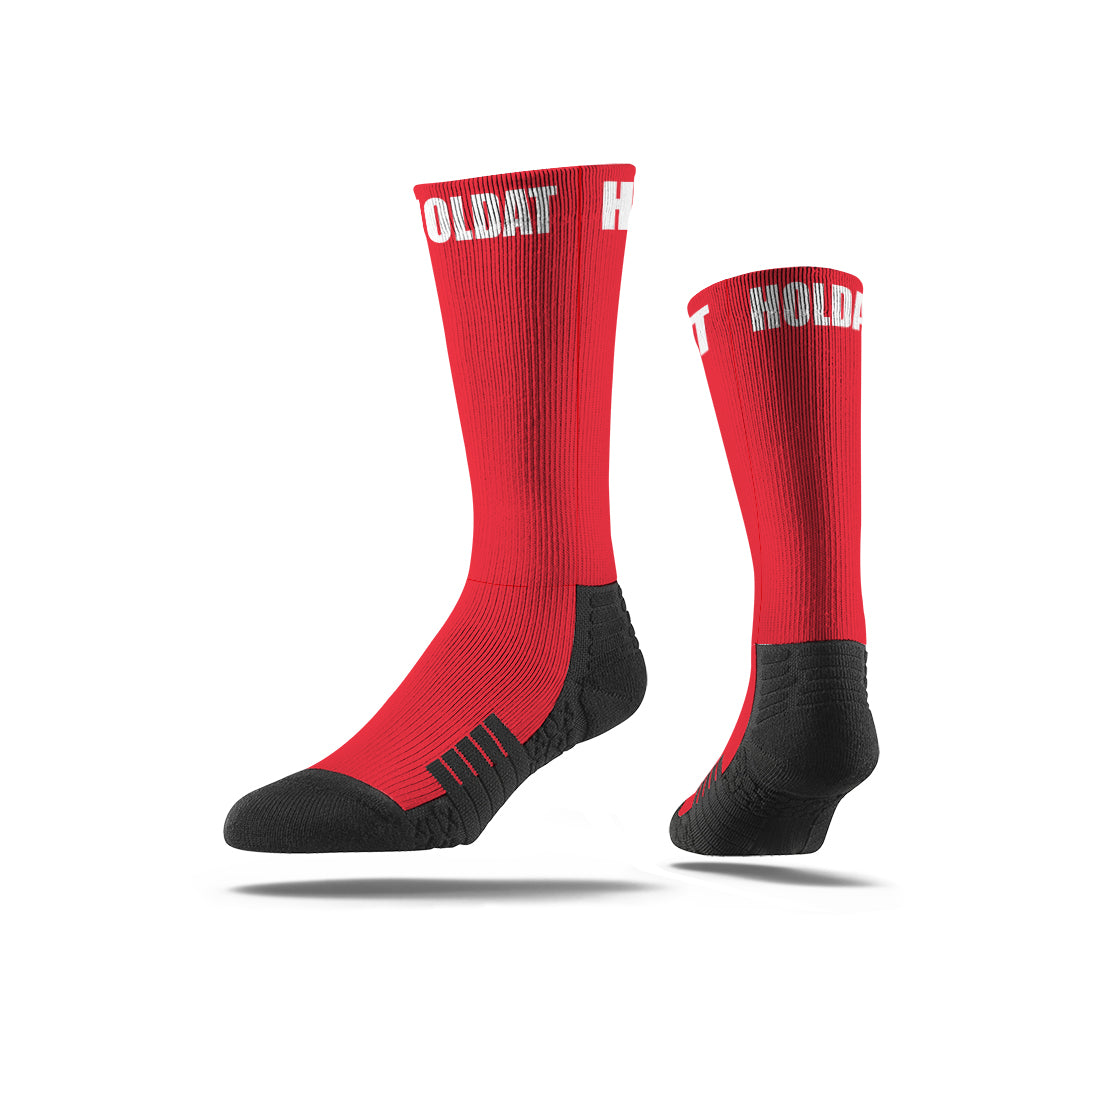 Holdat Small White on Red Socks